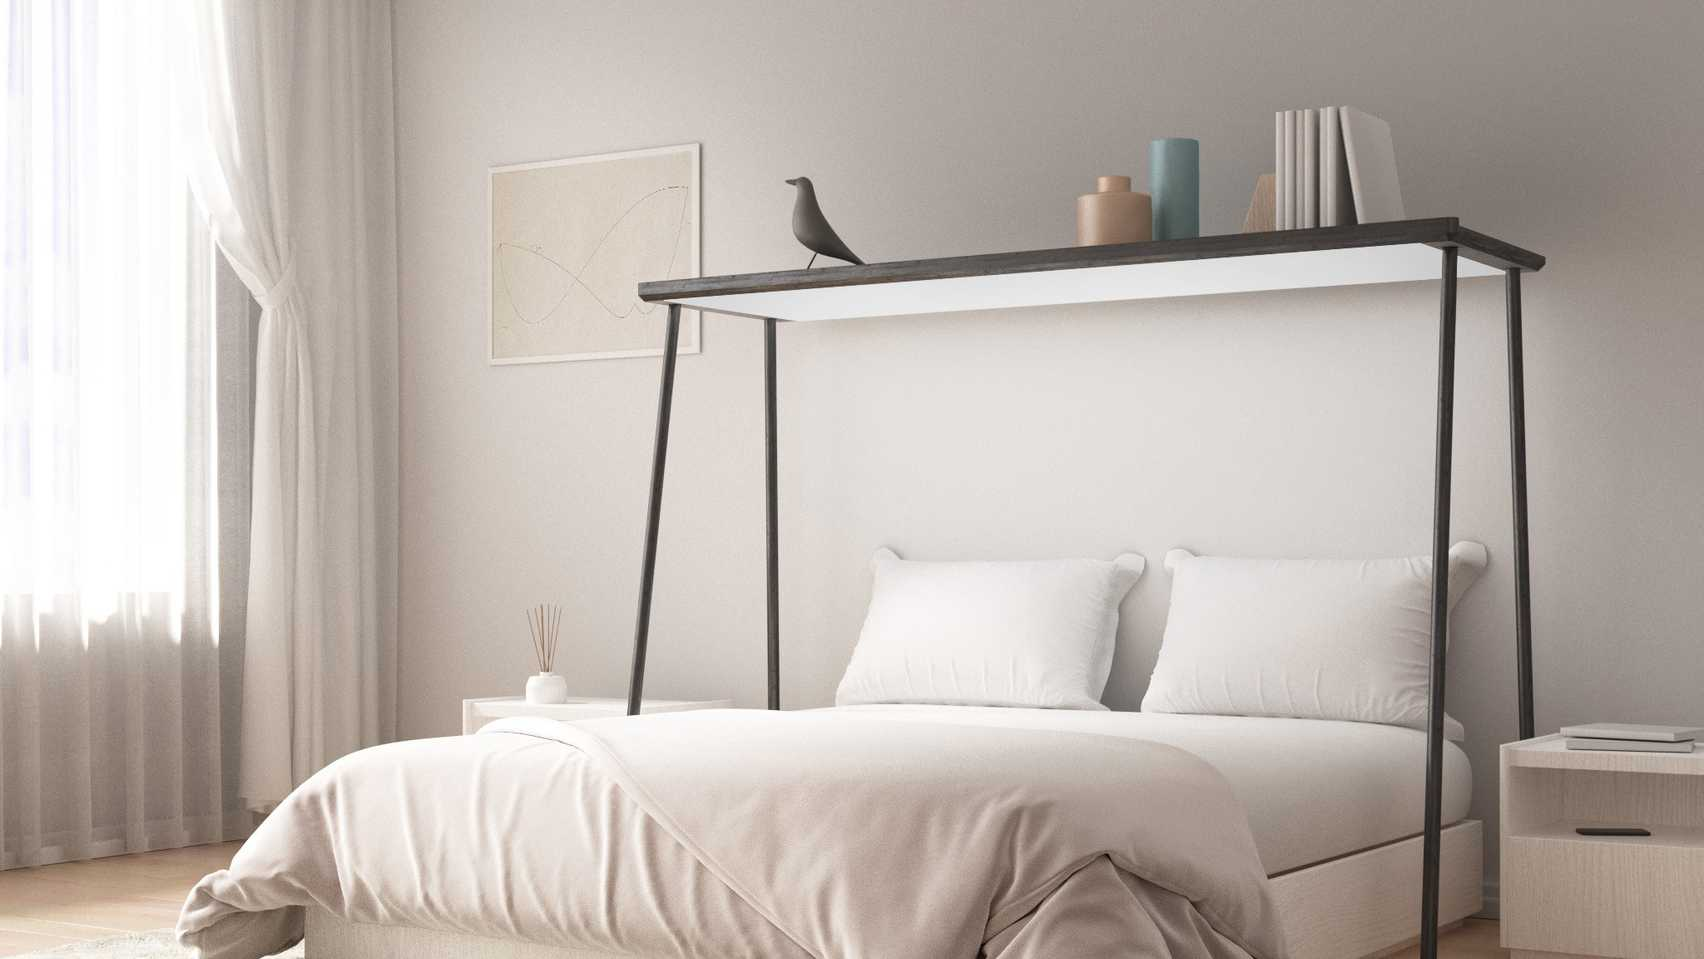 Console by Gianfranco Vasselli over-bed screen on the Dezeen and LG Display OLED Go competition shortlist